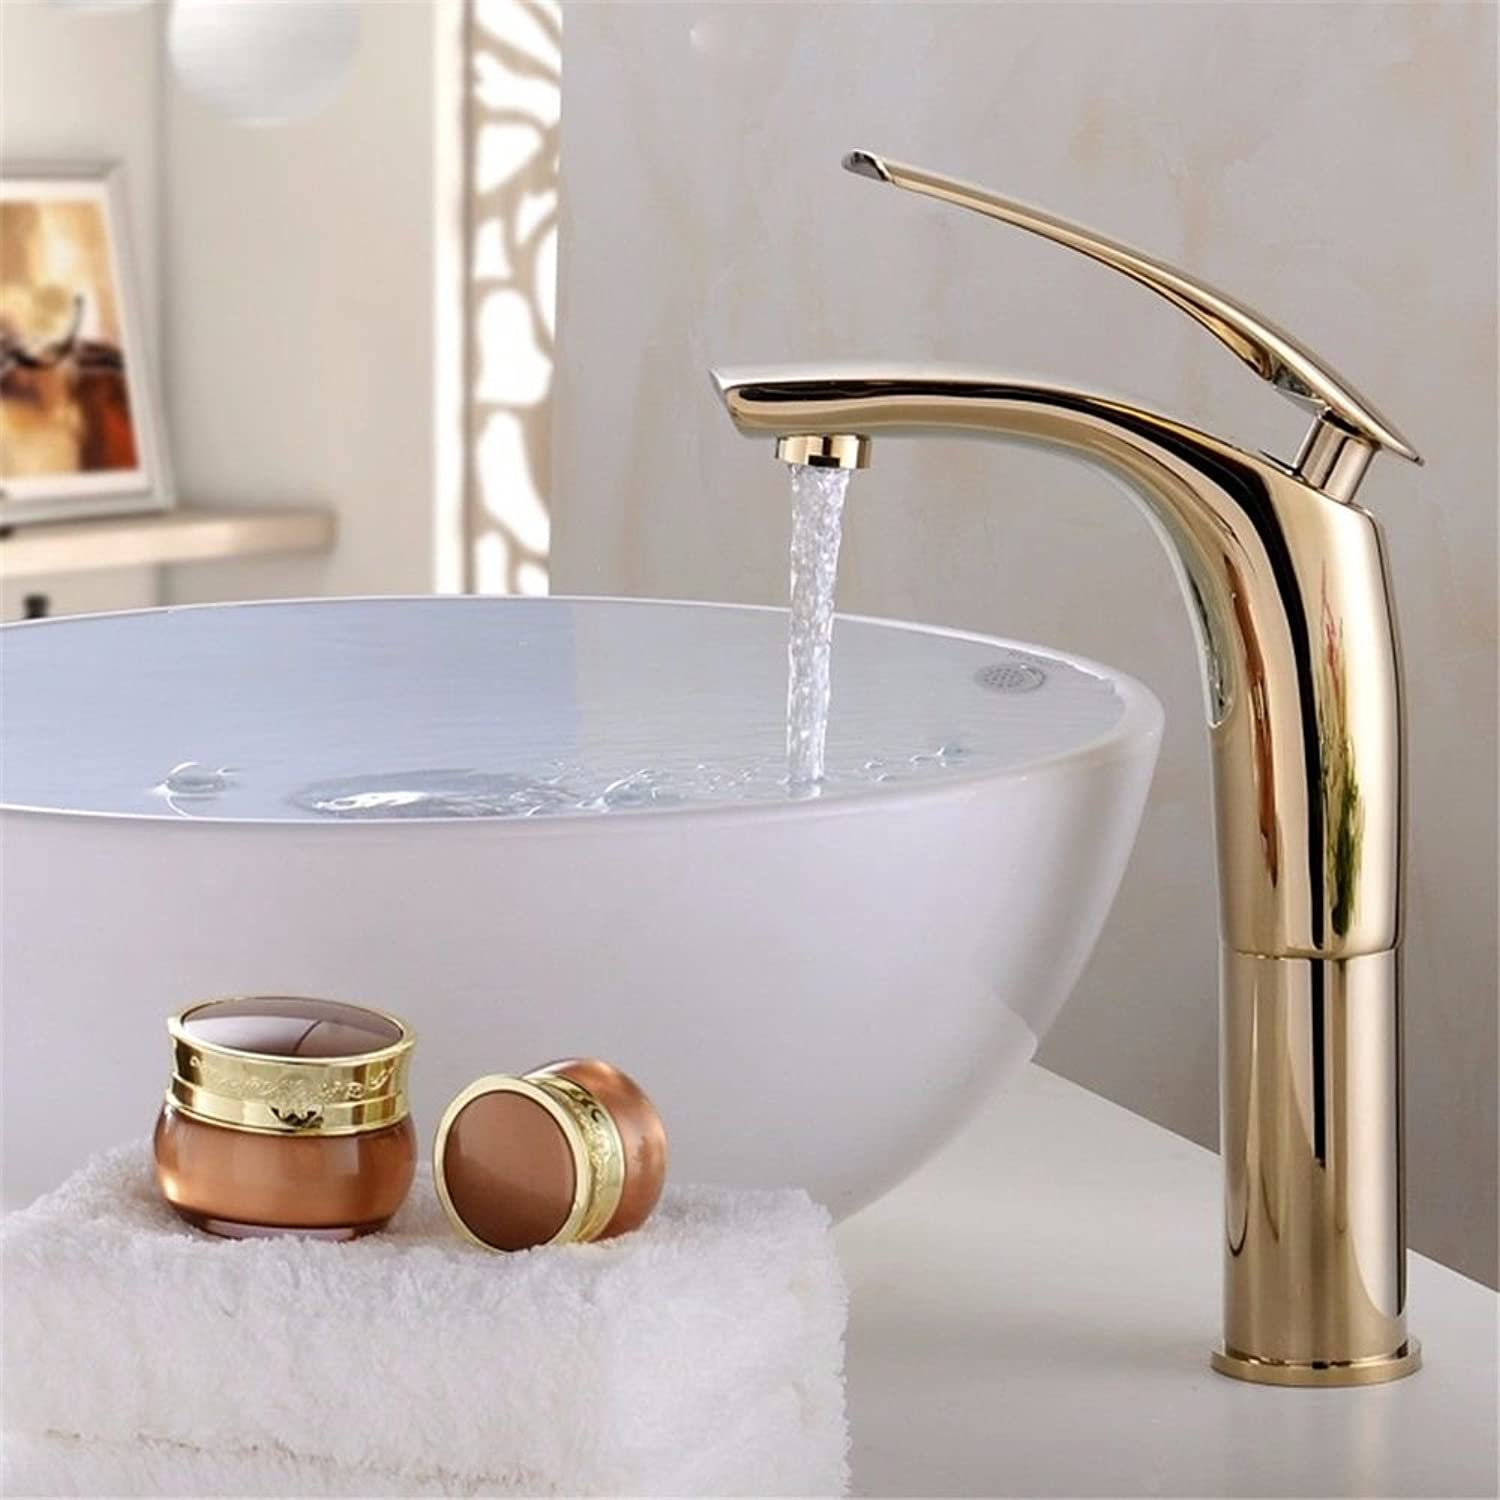 AQMMi Bathroom Sink Faucet Basin Mixer Tap color Baking Paint Single Hole gold Basin Sink Tap Bathroom Bar Faucet